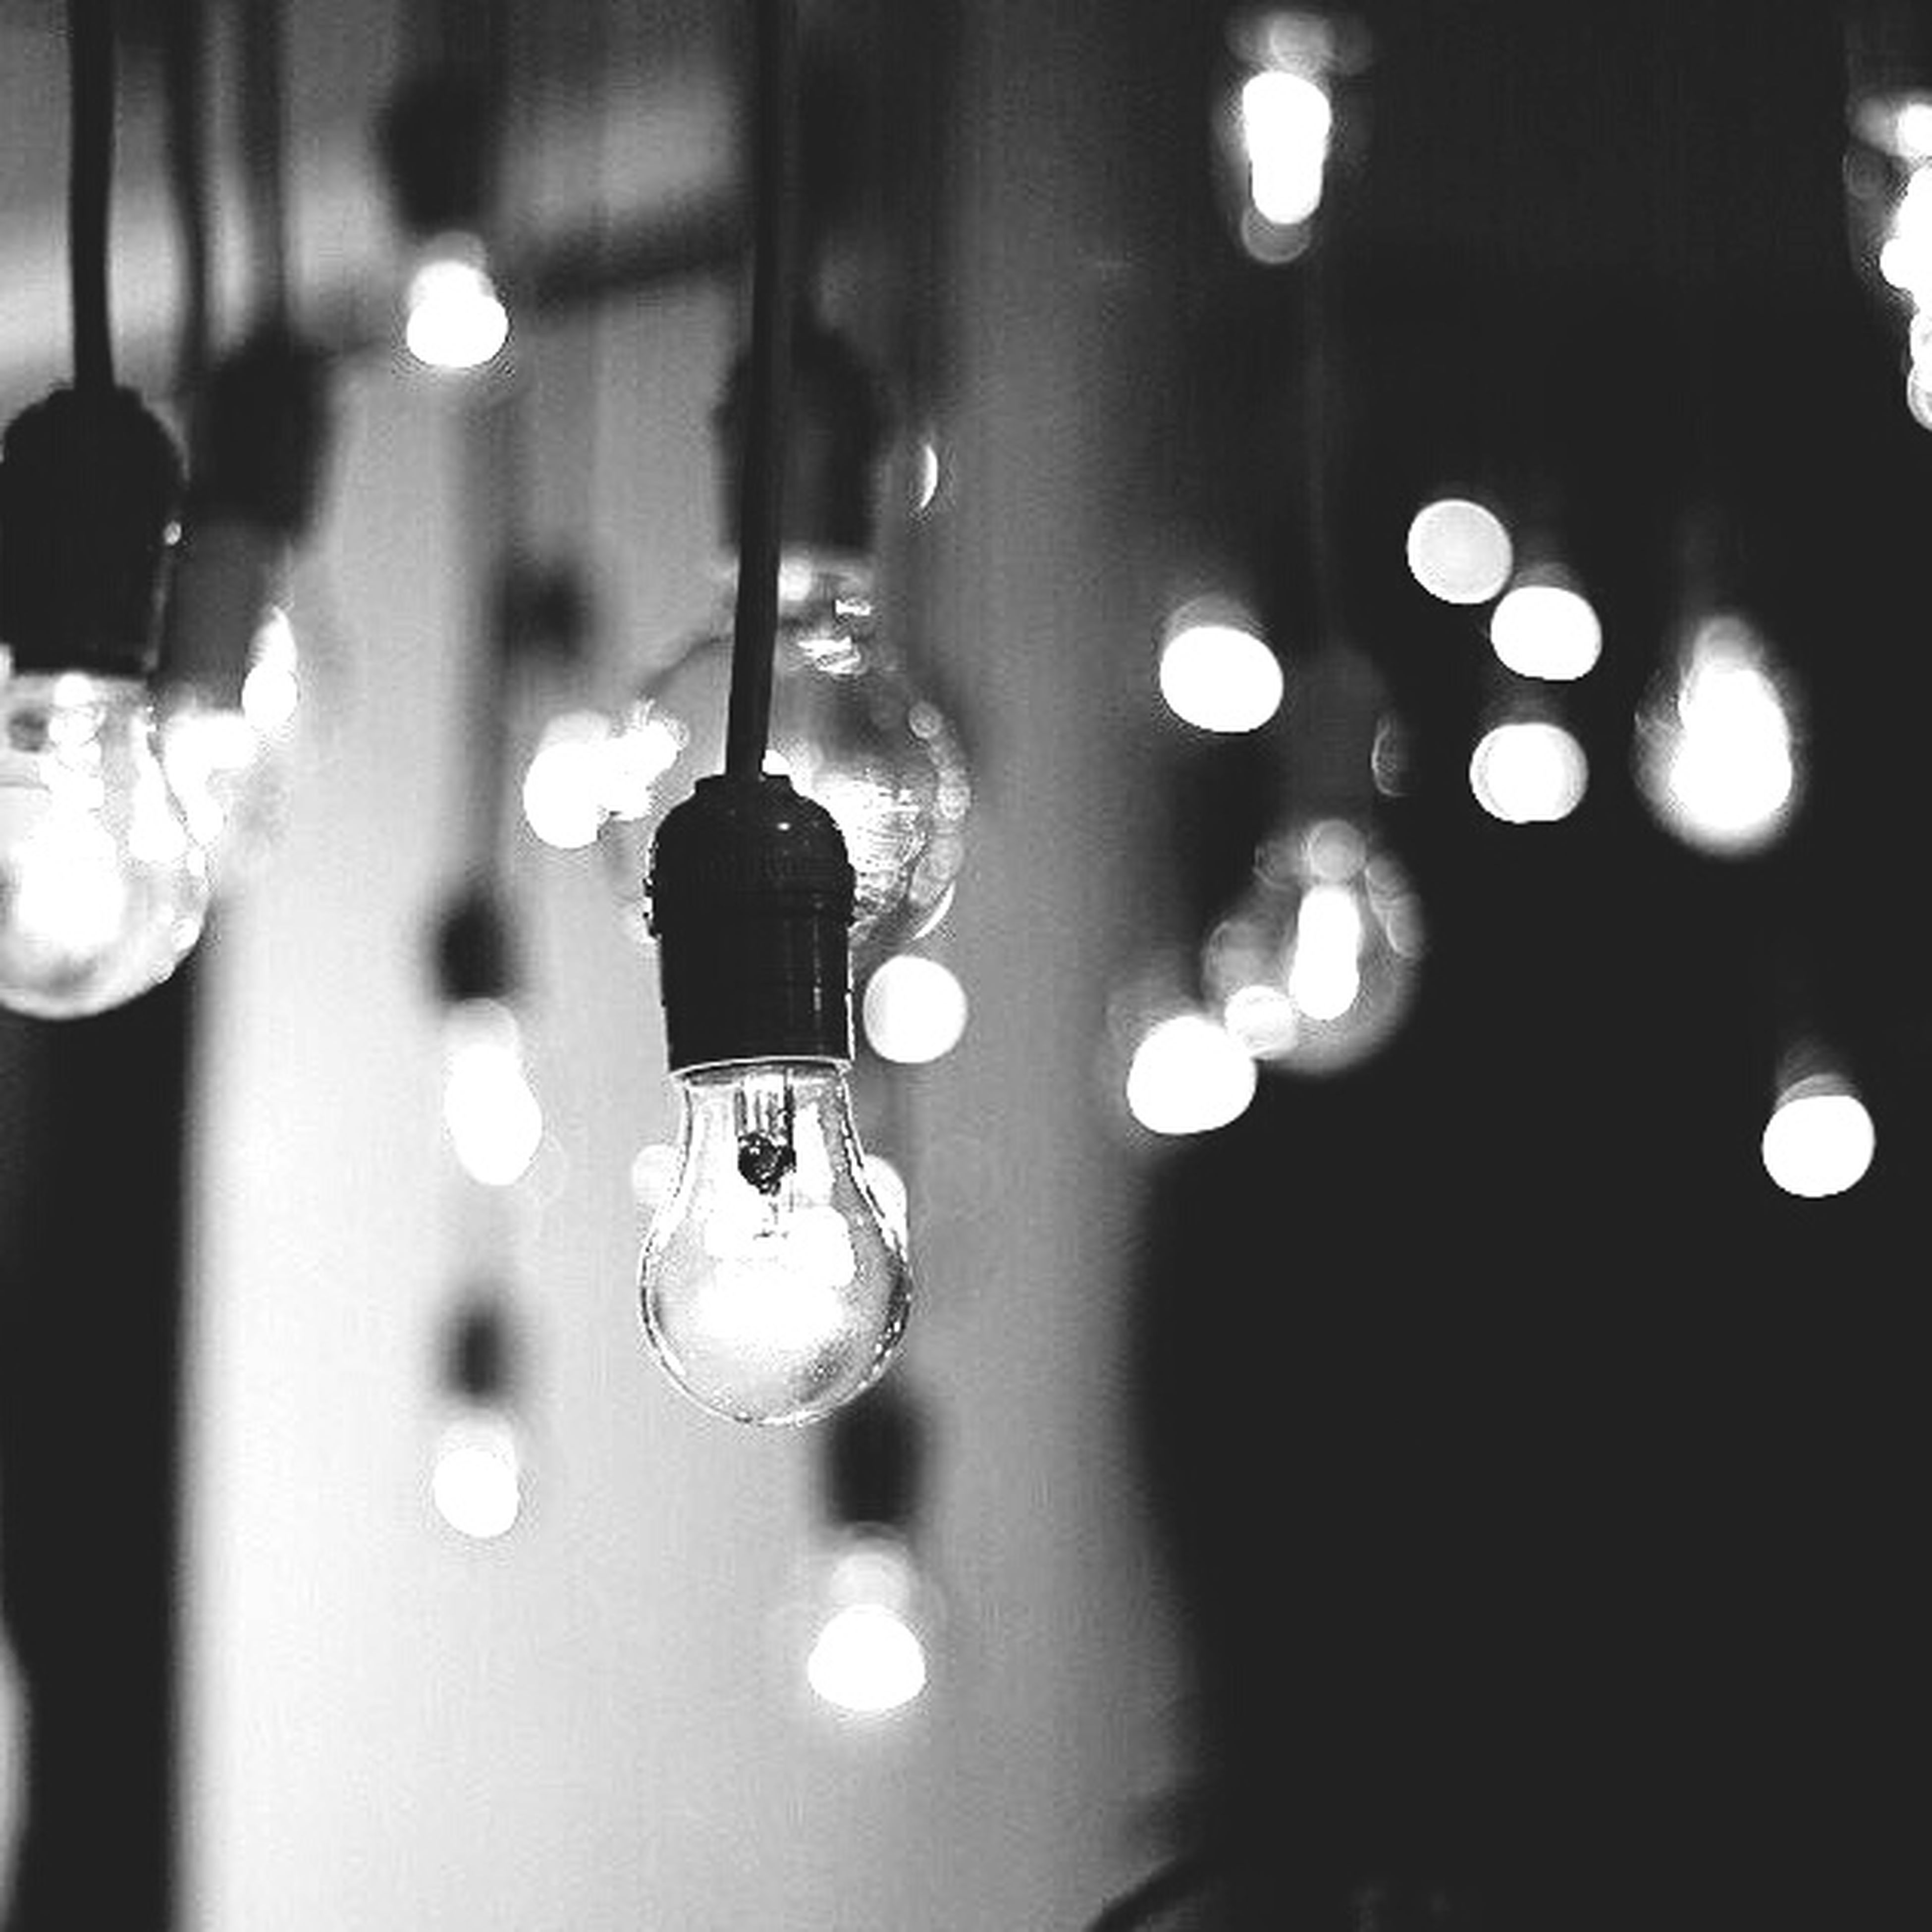 hanging, illuminated, focus on foreground, lighting equipment, indoors, no people, light bulb, low angle view, electricity, close-up, day